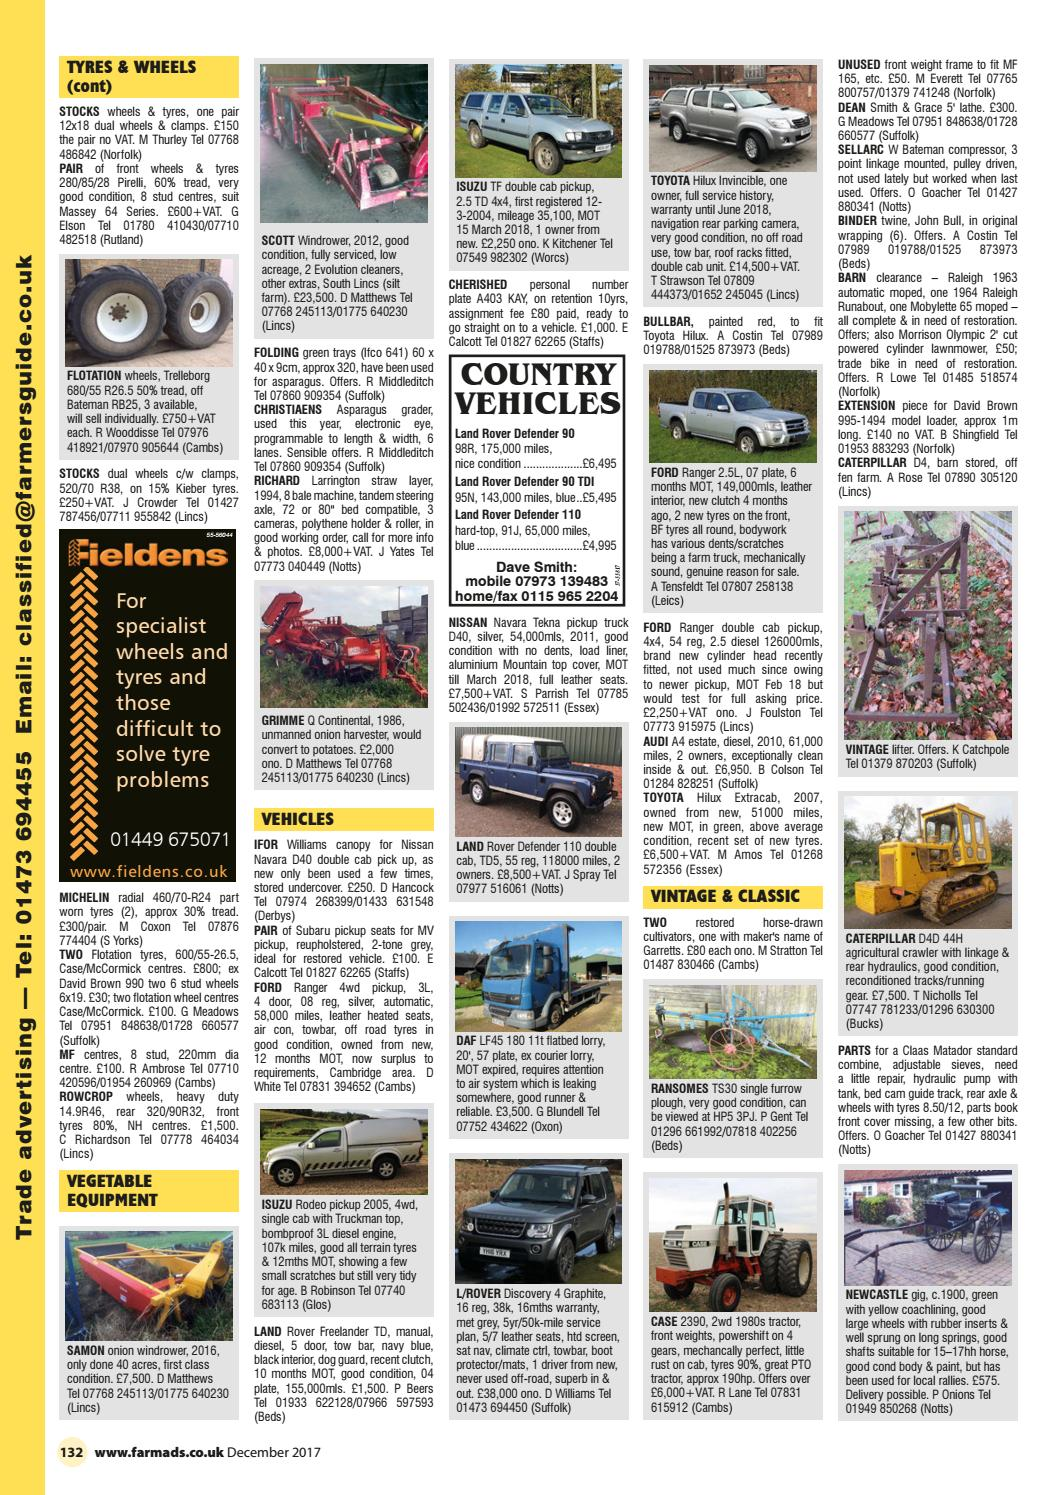 Farmers Guide December 2017 by Farmers Guide - issuu